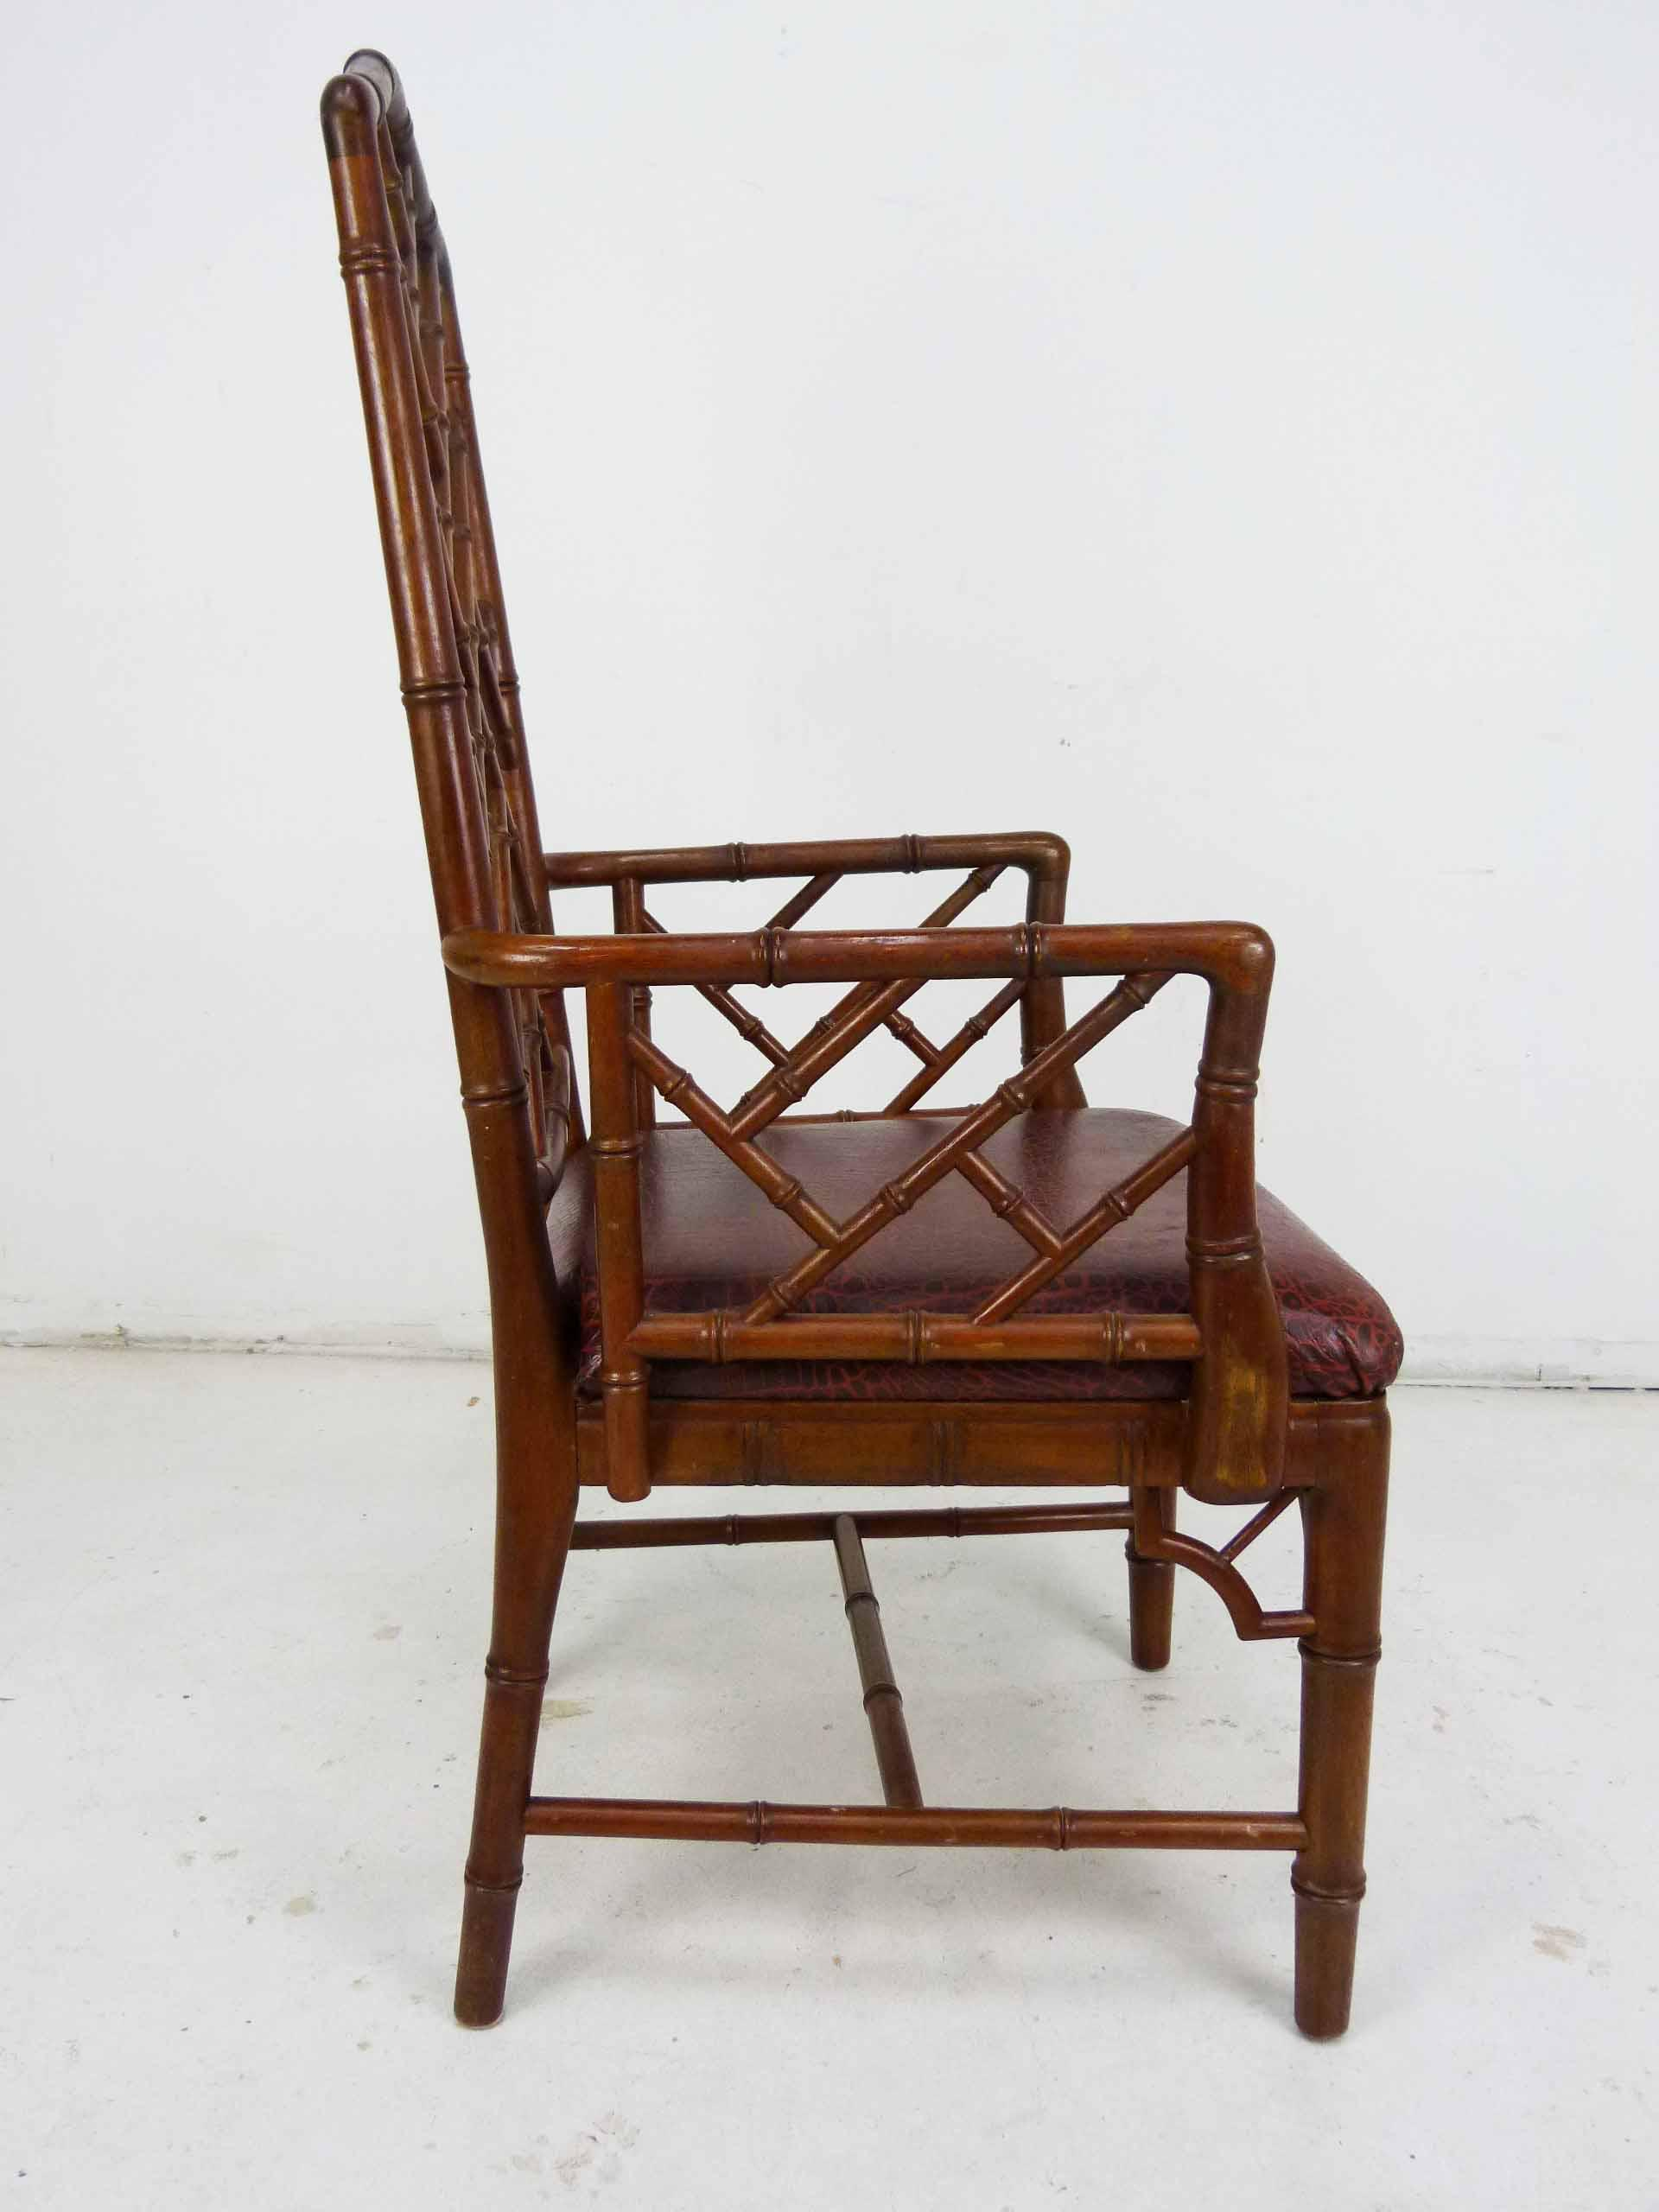 Marvelous Old Chinese Chippendale Bamboo Arm Chair   Image 5 Of 10